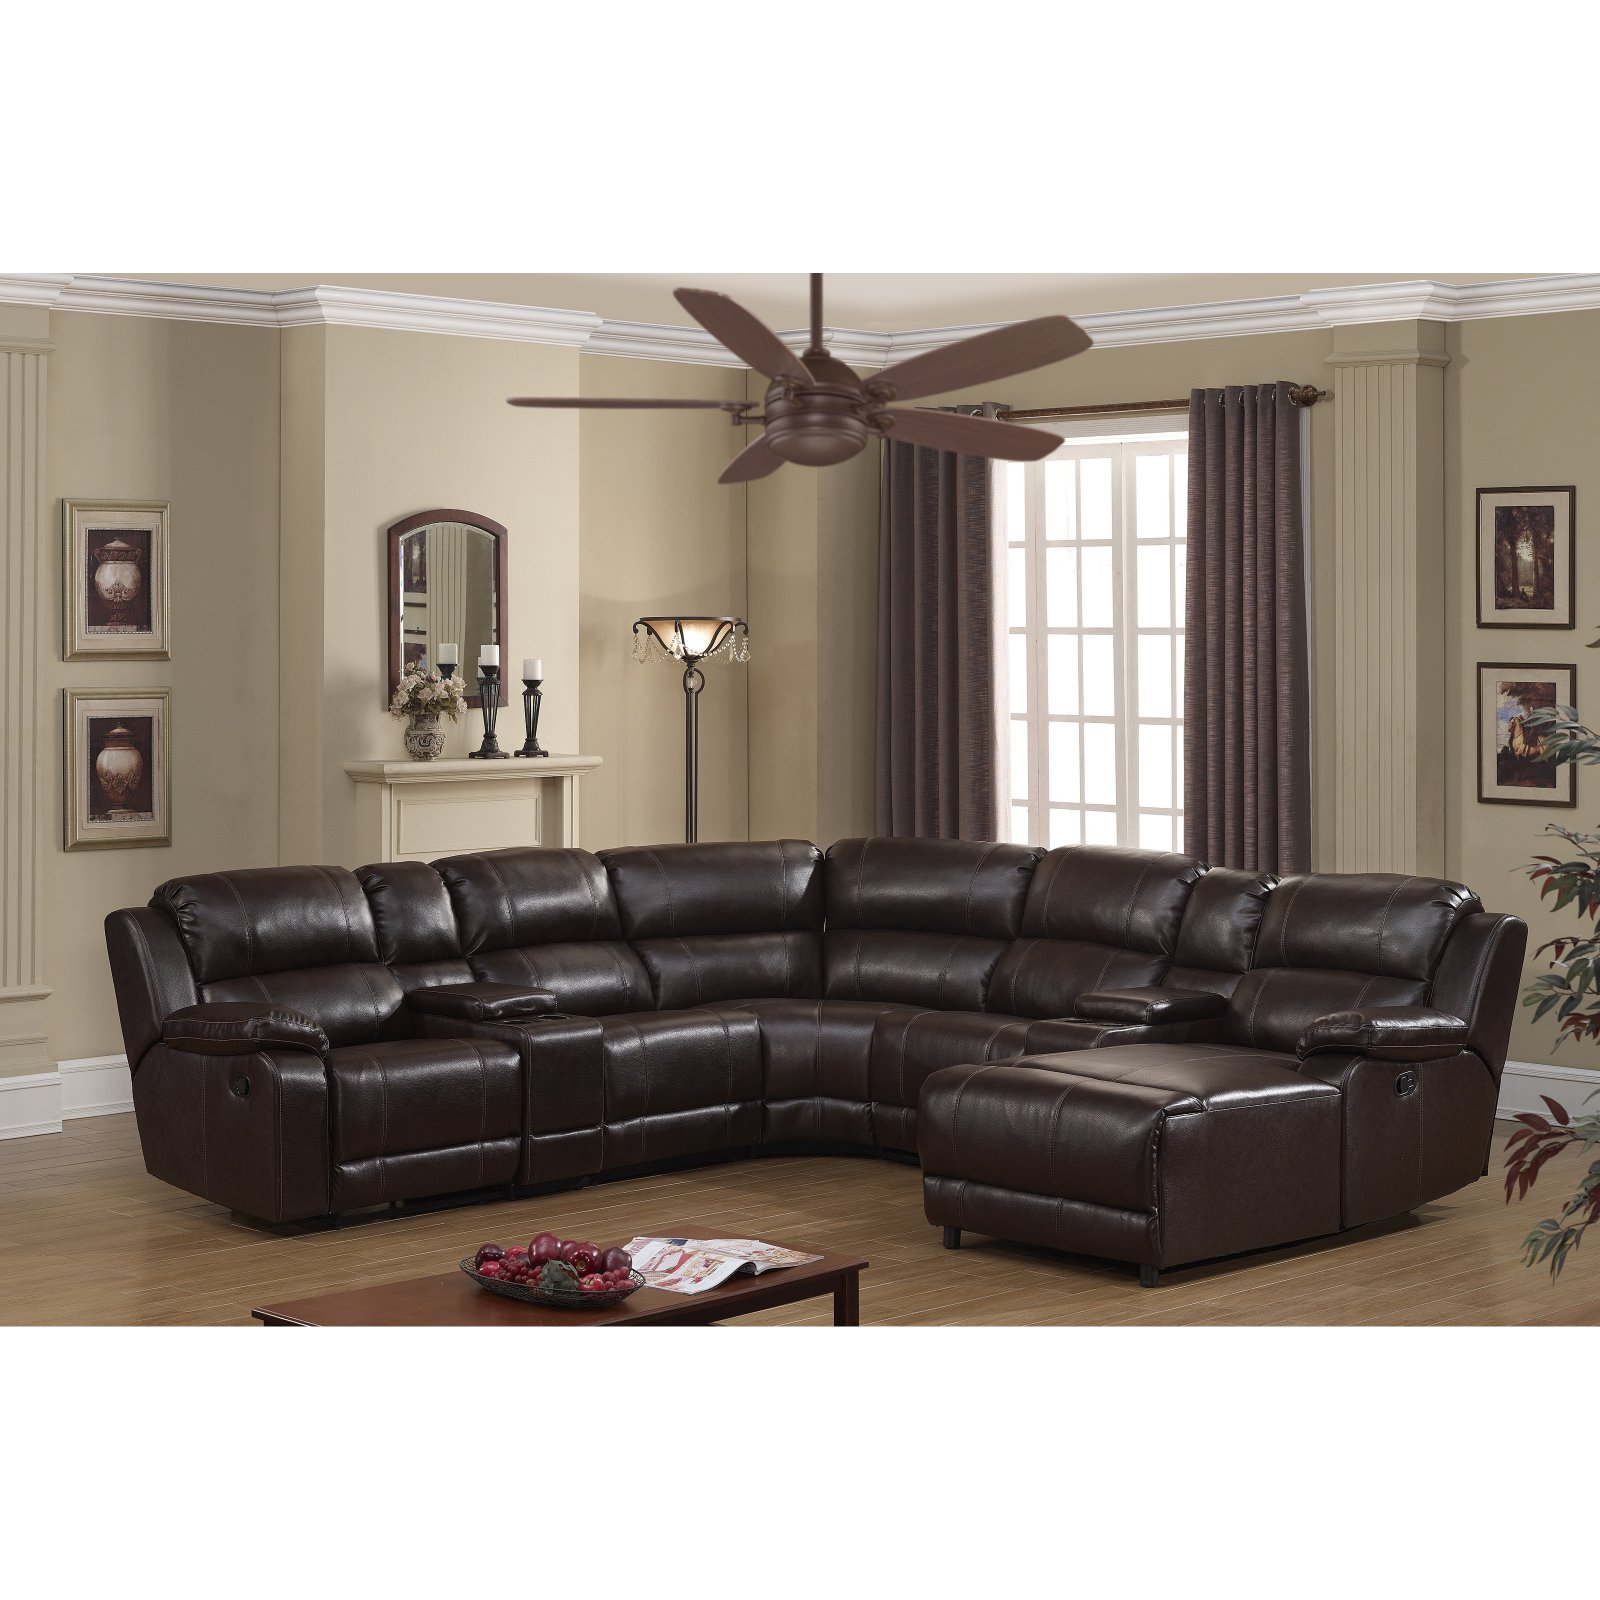 Image of AC Pacific Colton 7 Piece Sectional Sofa Set